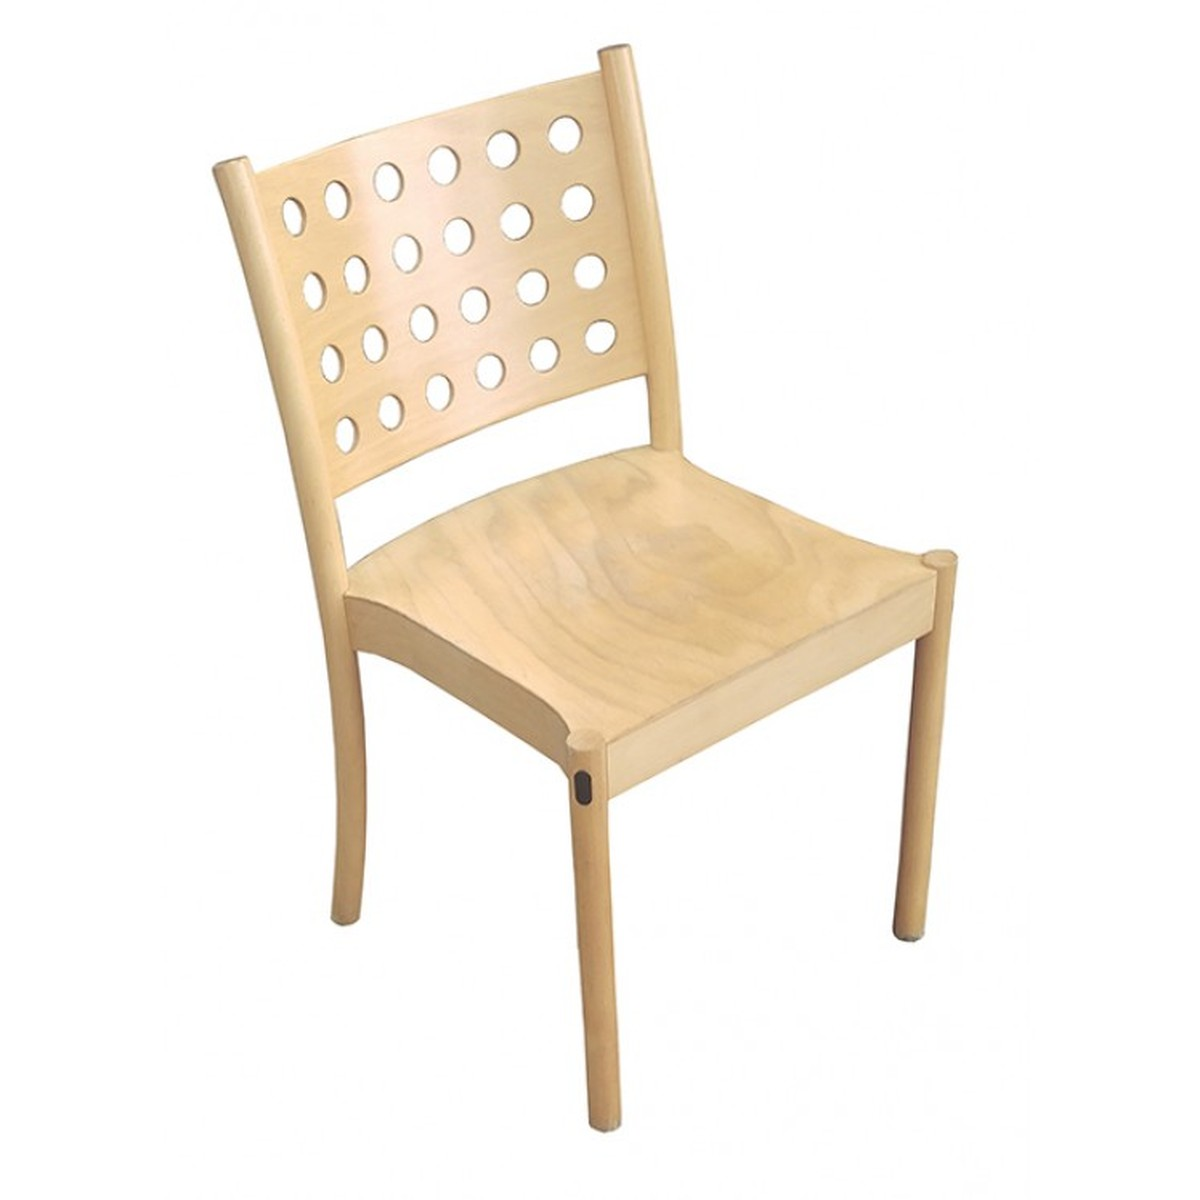 wood frame chair with lumbar support for office secondhand chairs and tables stacking 20x solid